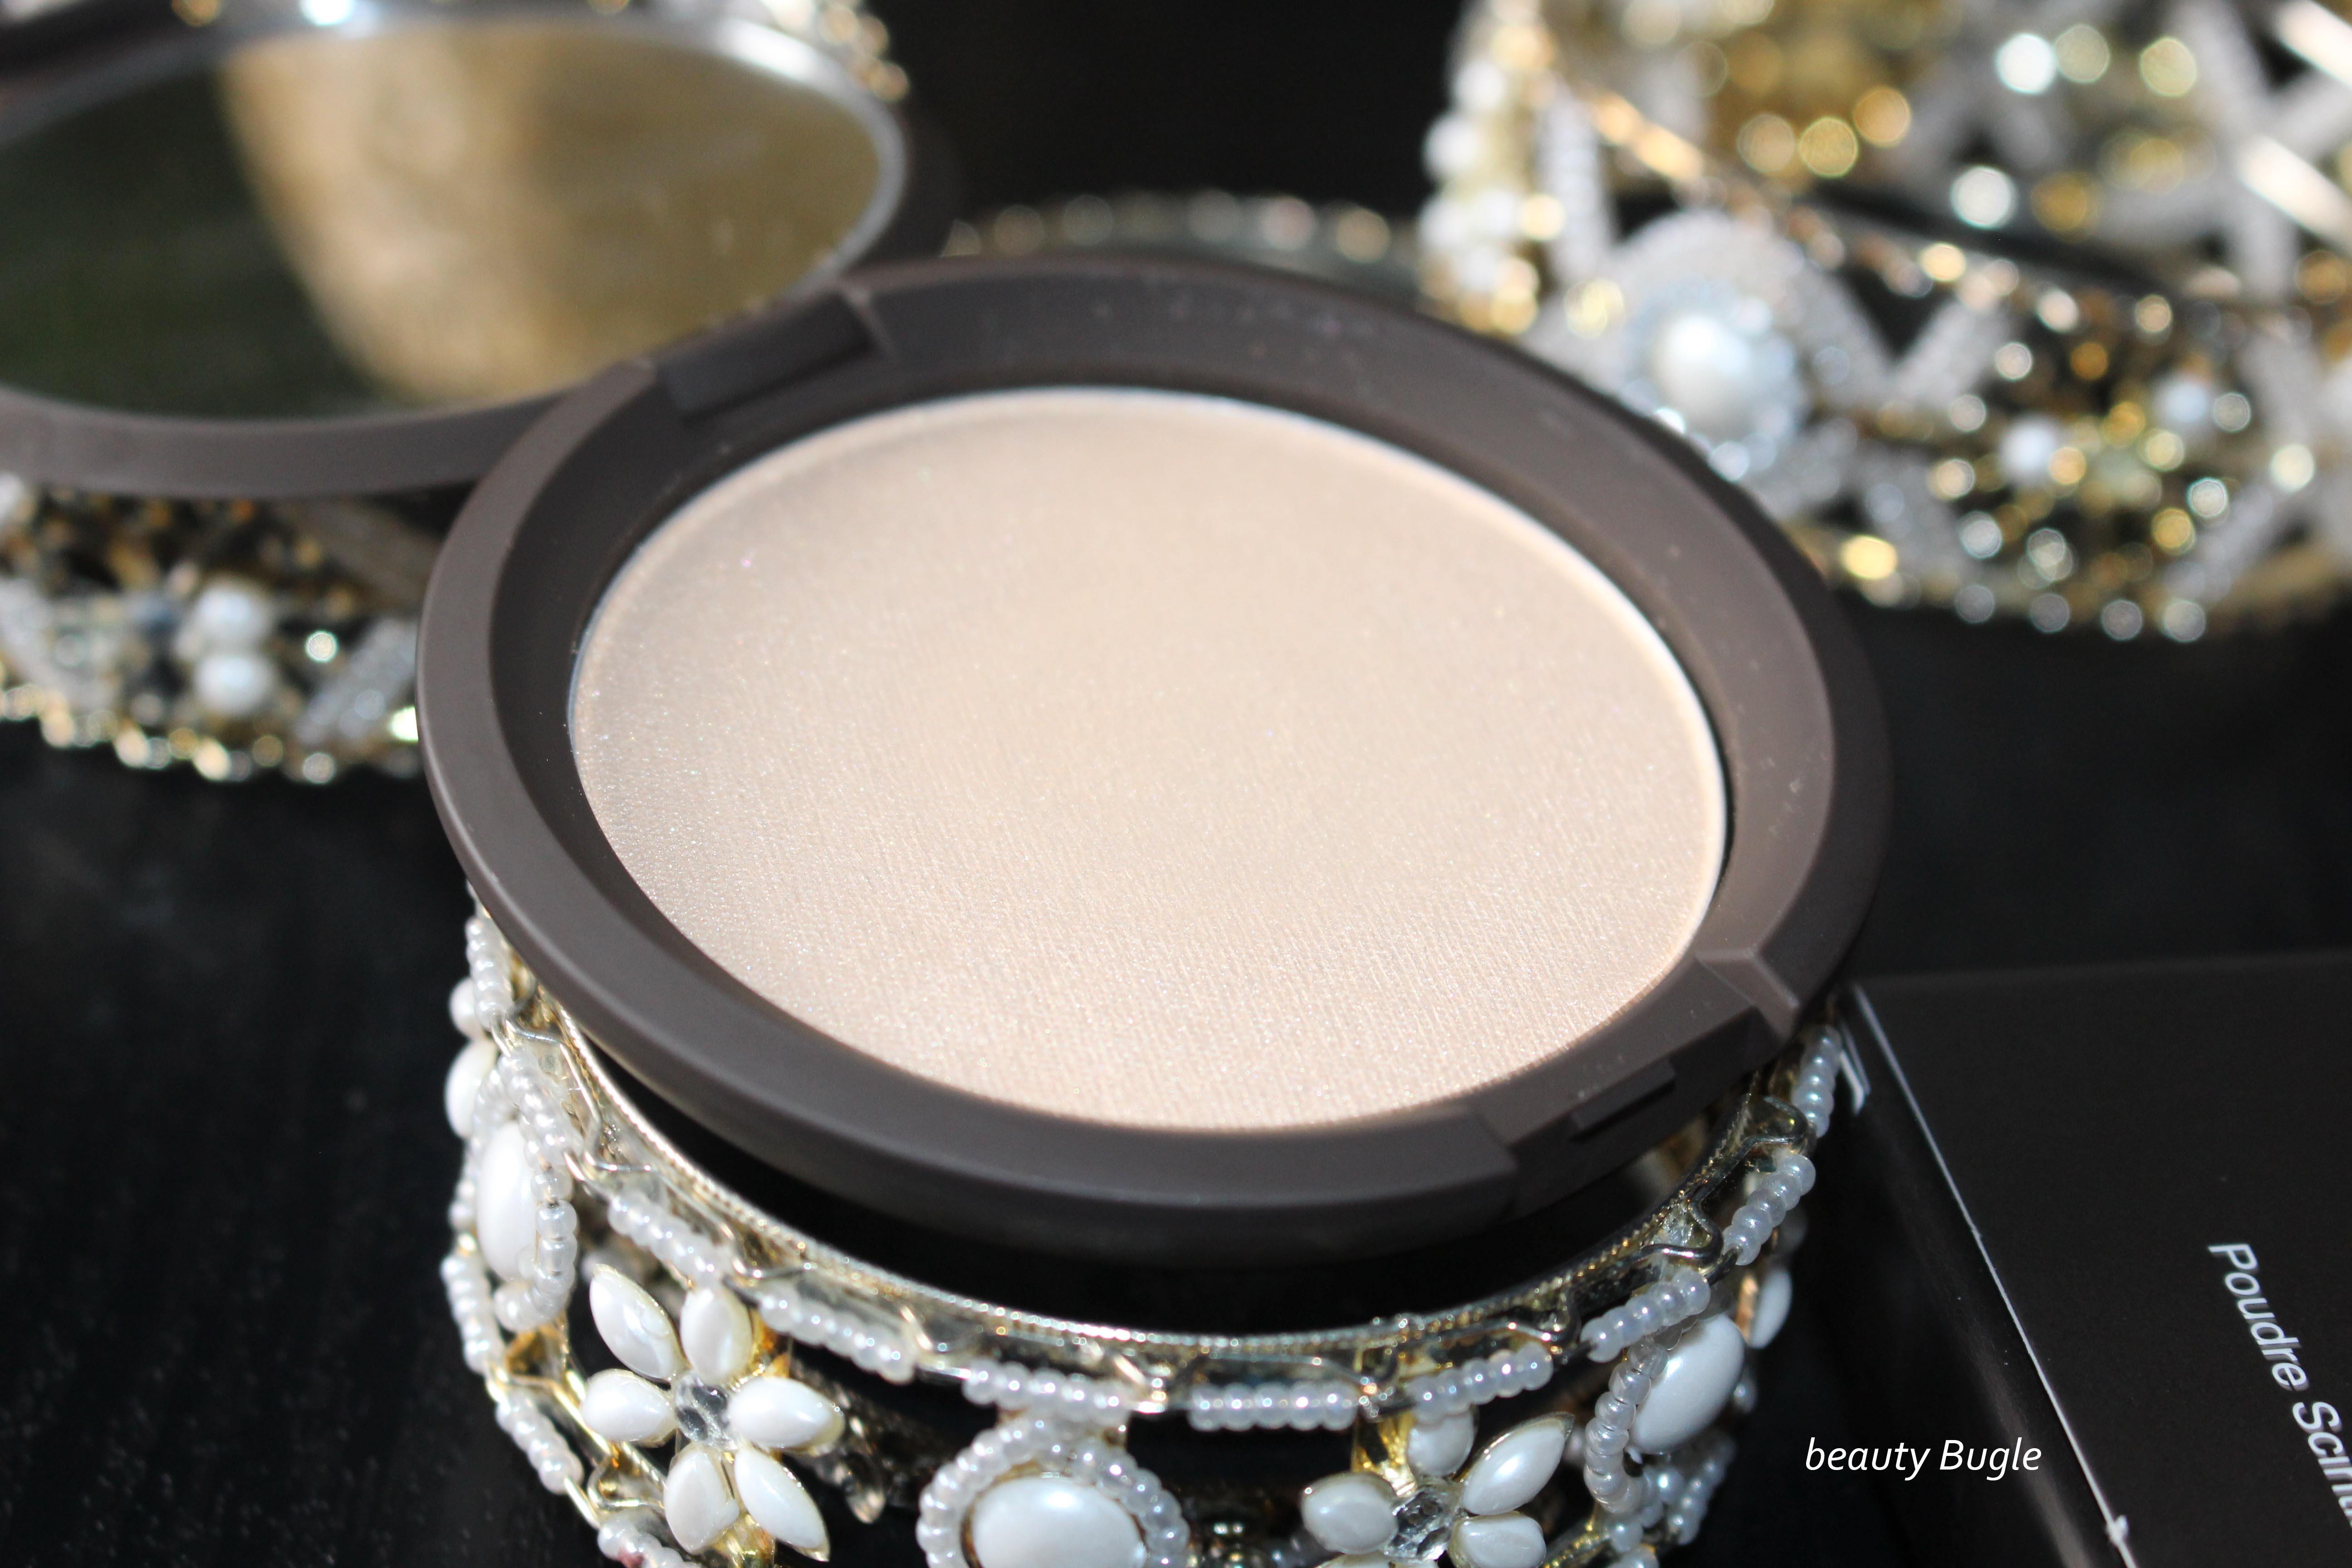 Becca's Shimmering Skin Perfector Pressed (Moonstone) is housed in a mirrored compact.